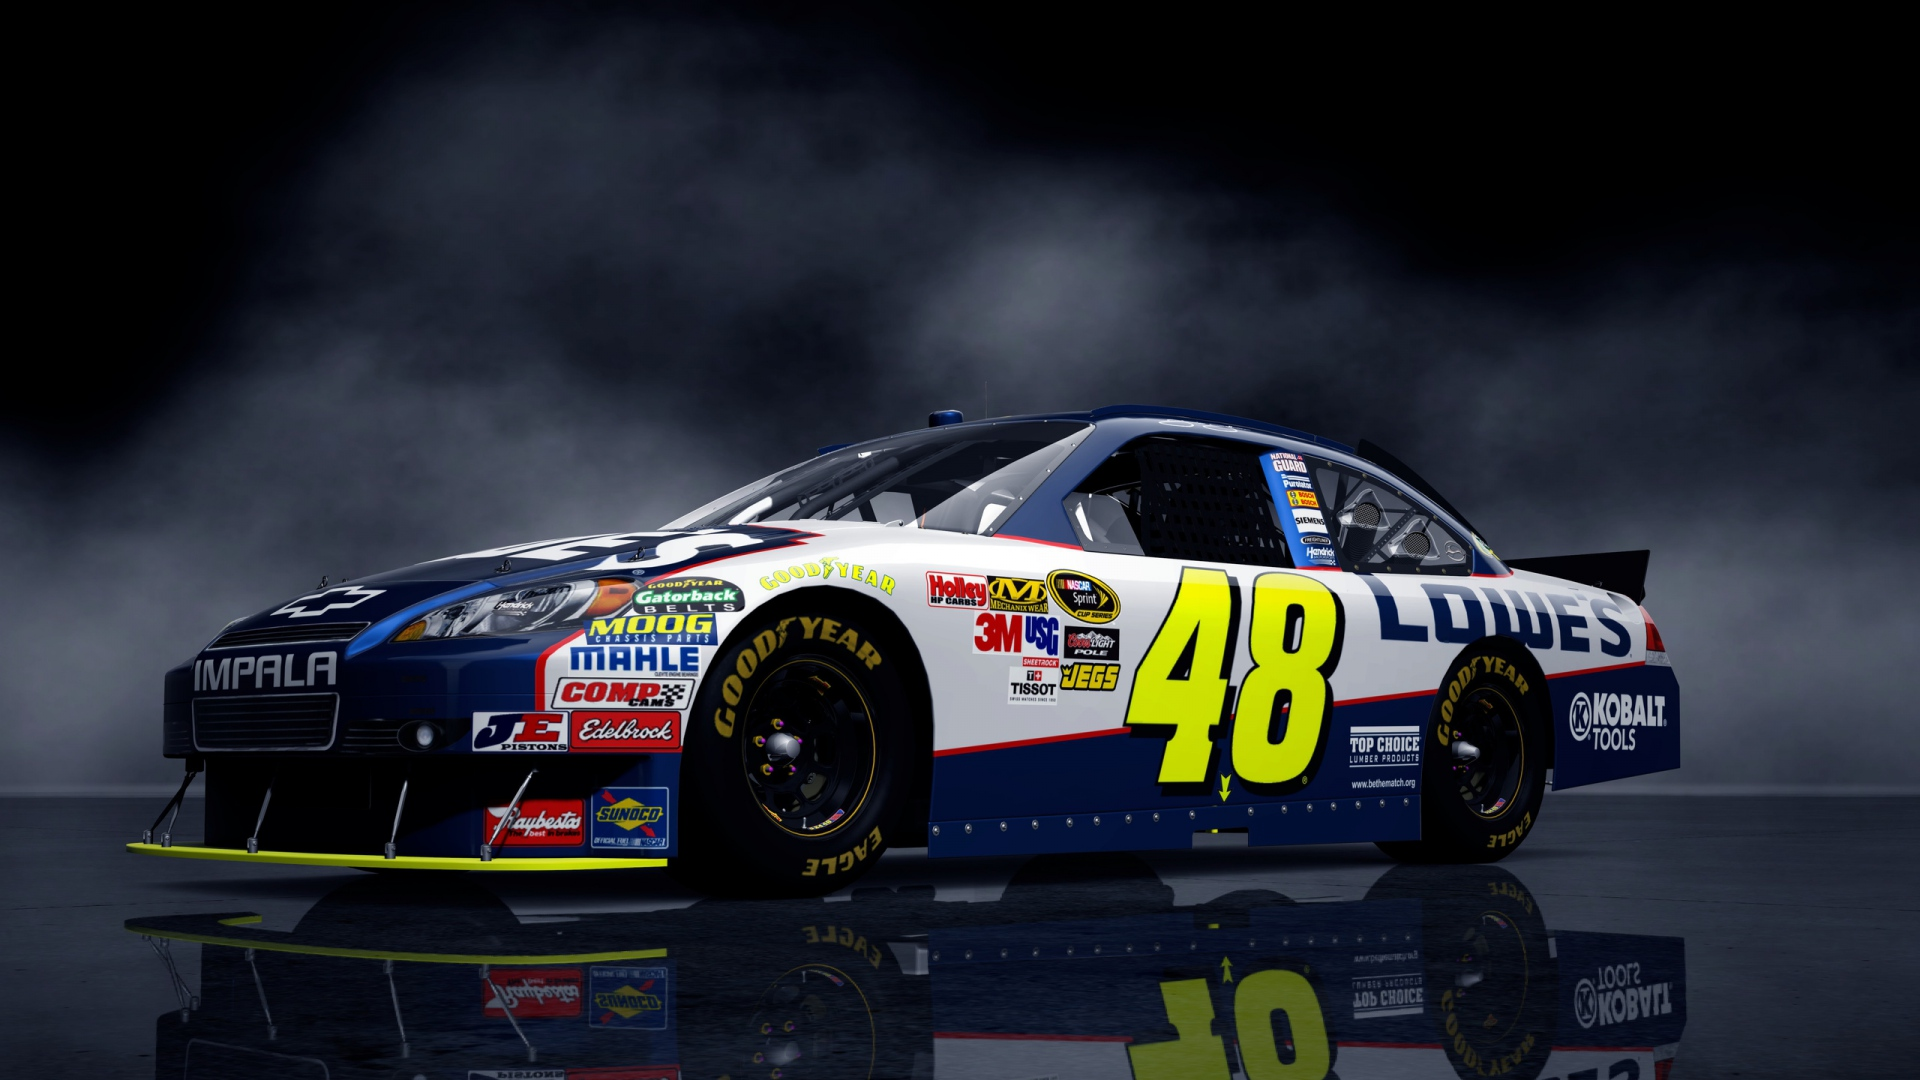 Chevrolet-Car-Nascar-Lights-Background-1920x1080-Need-iPhone-S-Plus-Background-fo-wallpaper-wpc5803415